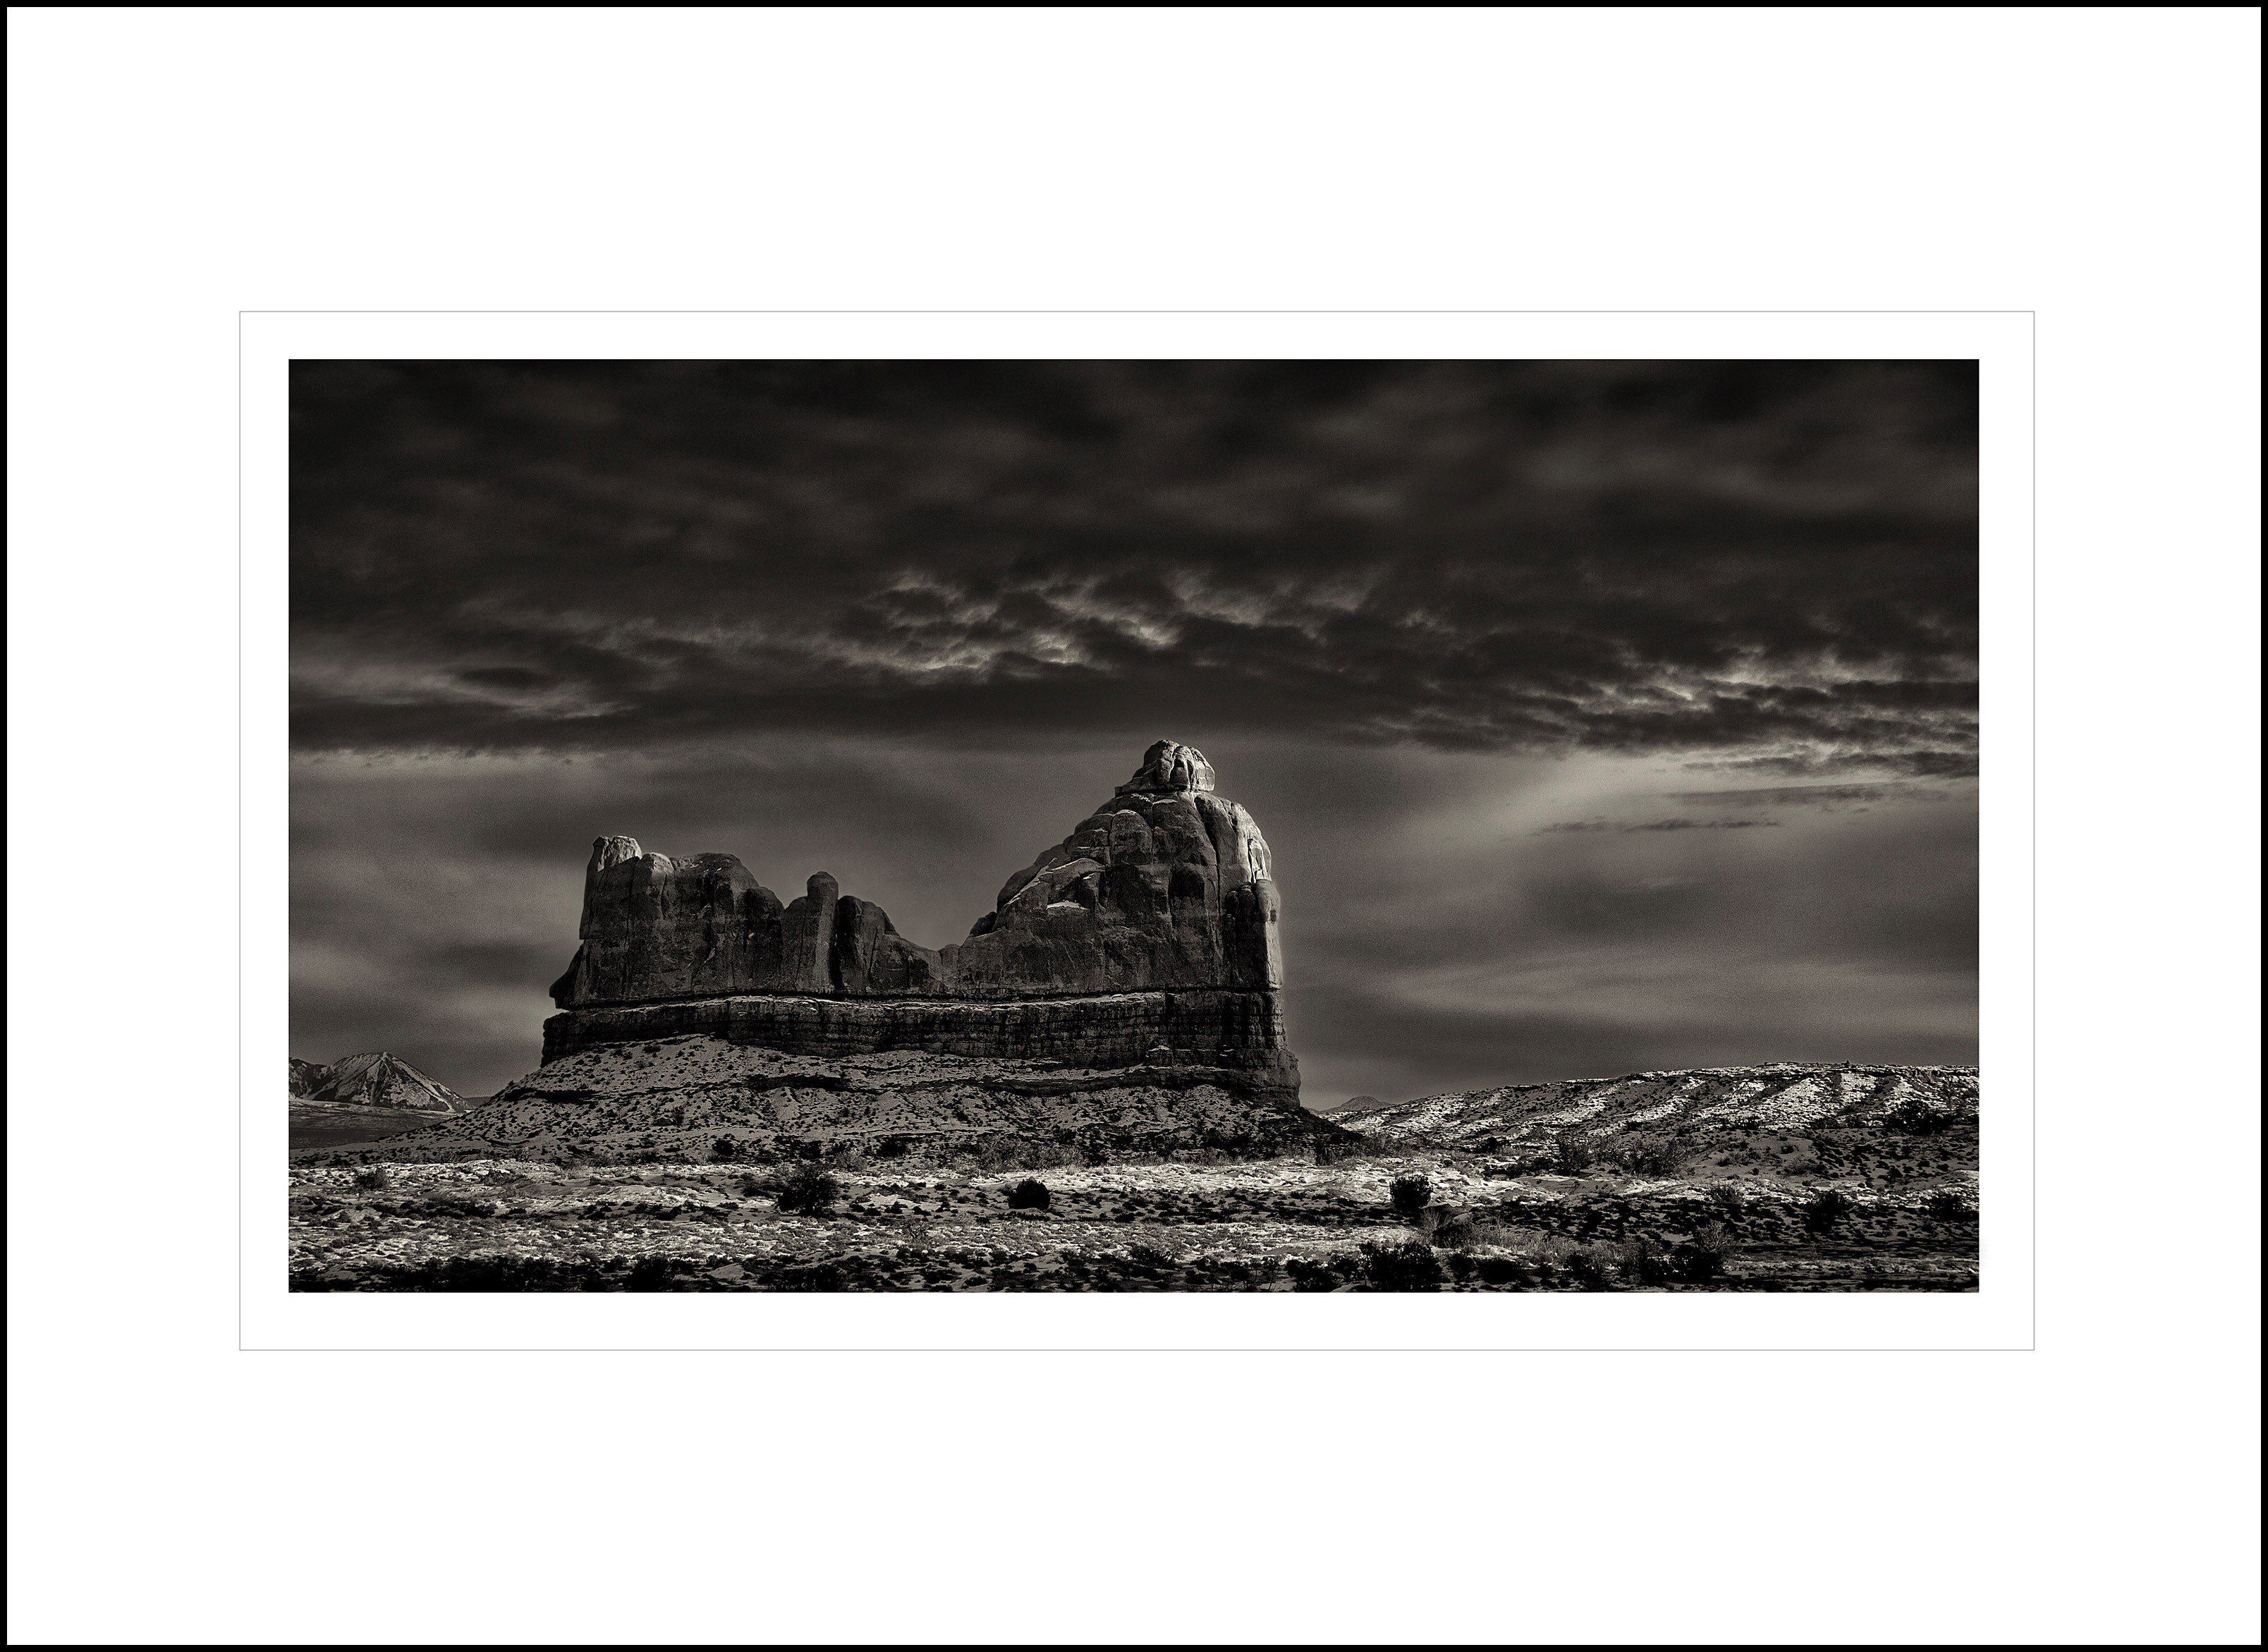 Cheri MacCallum - Shiprock at First Light